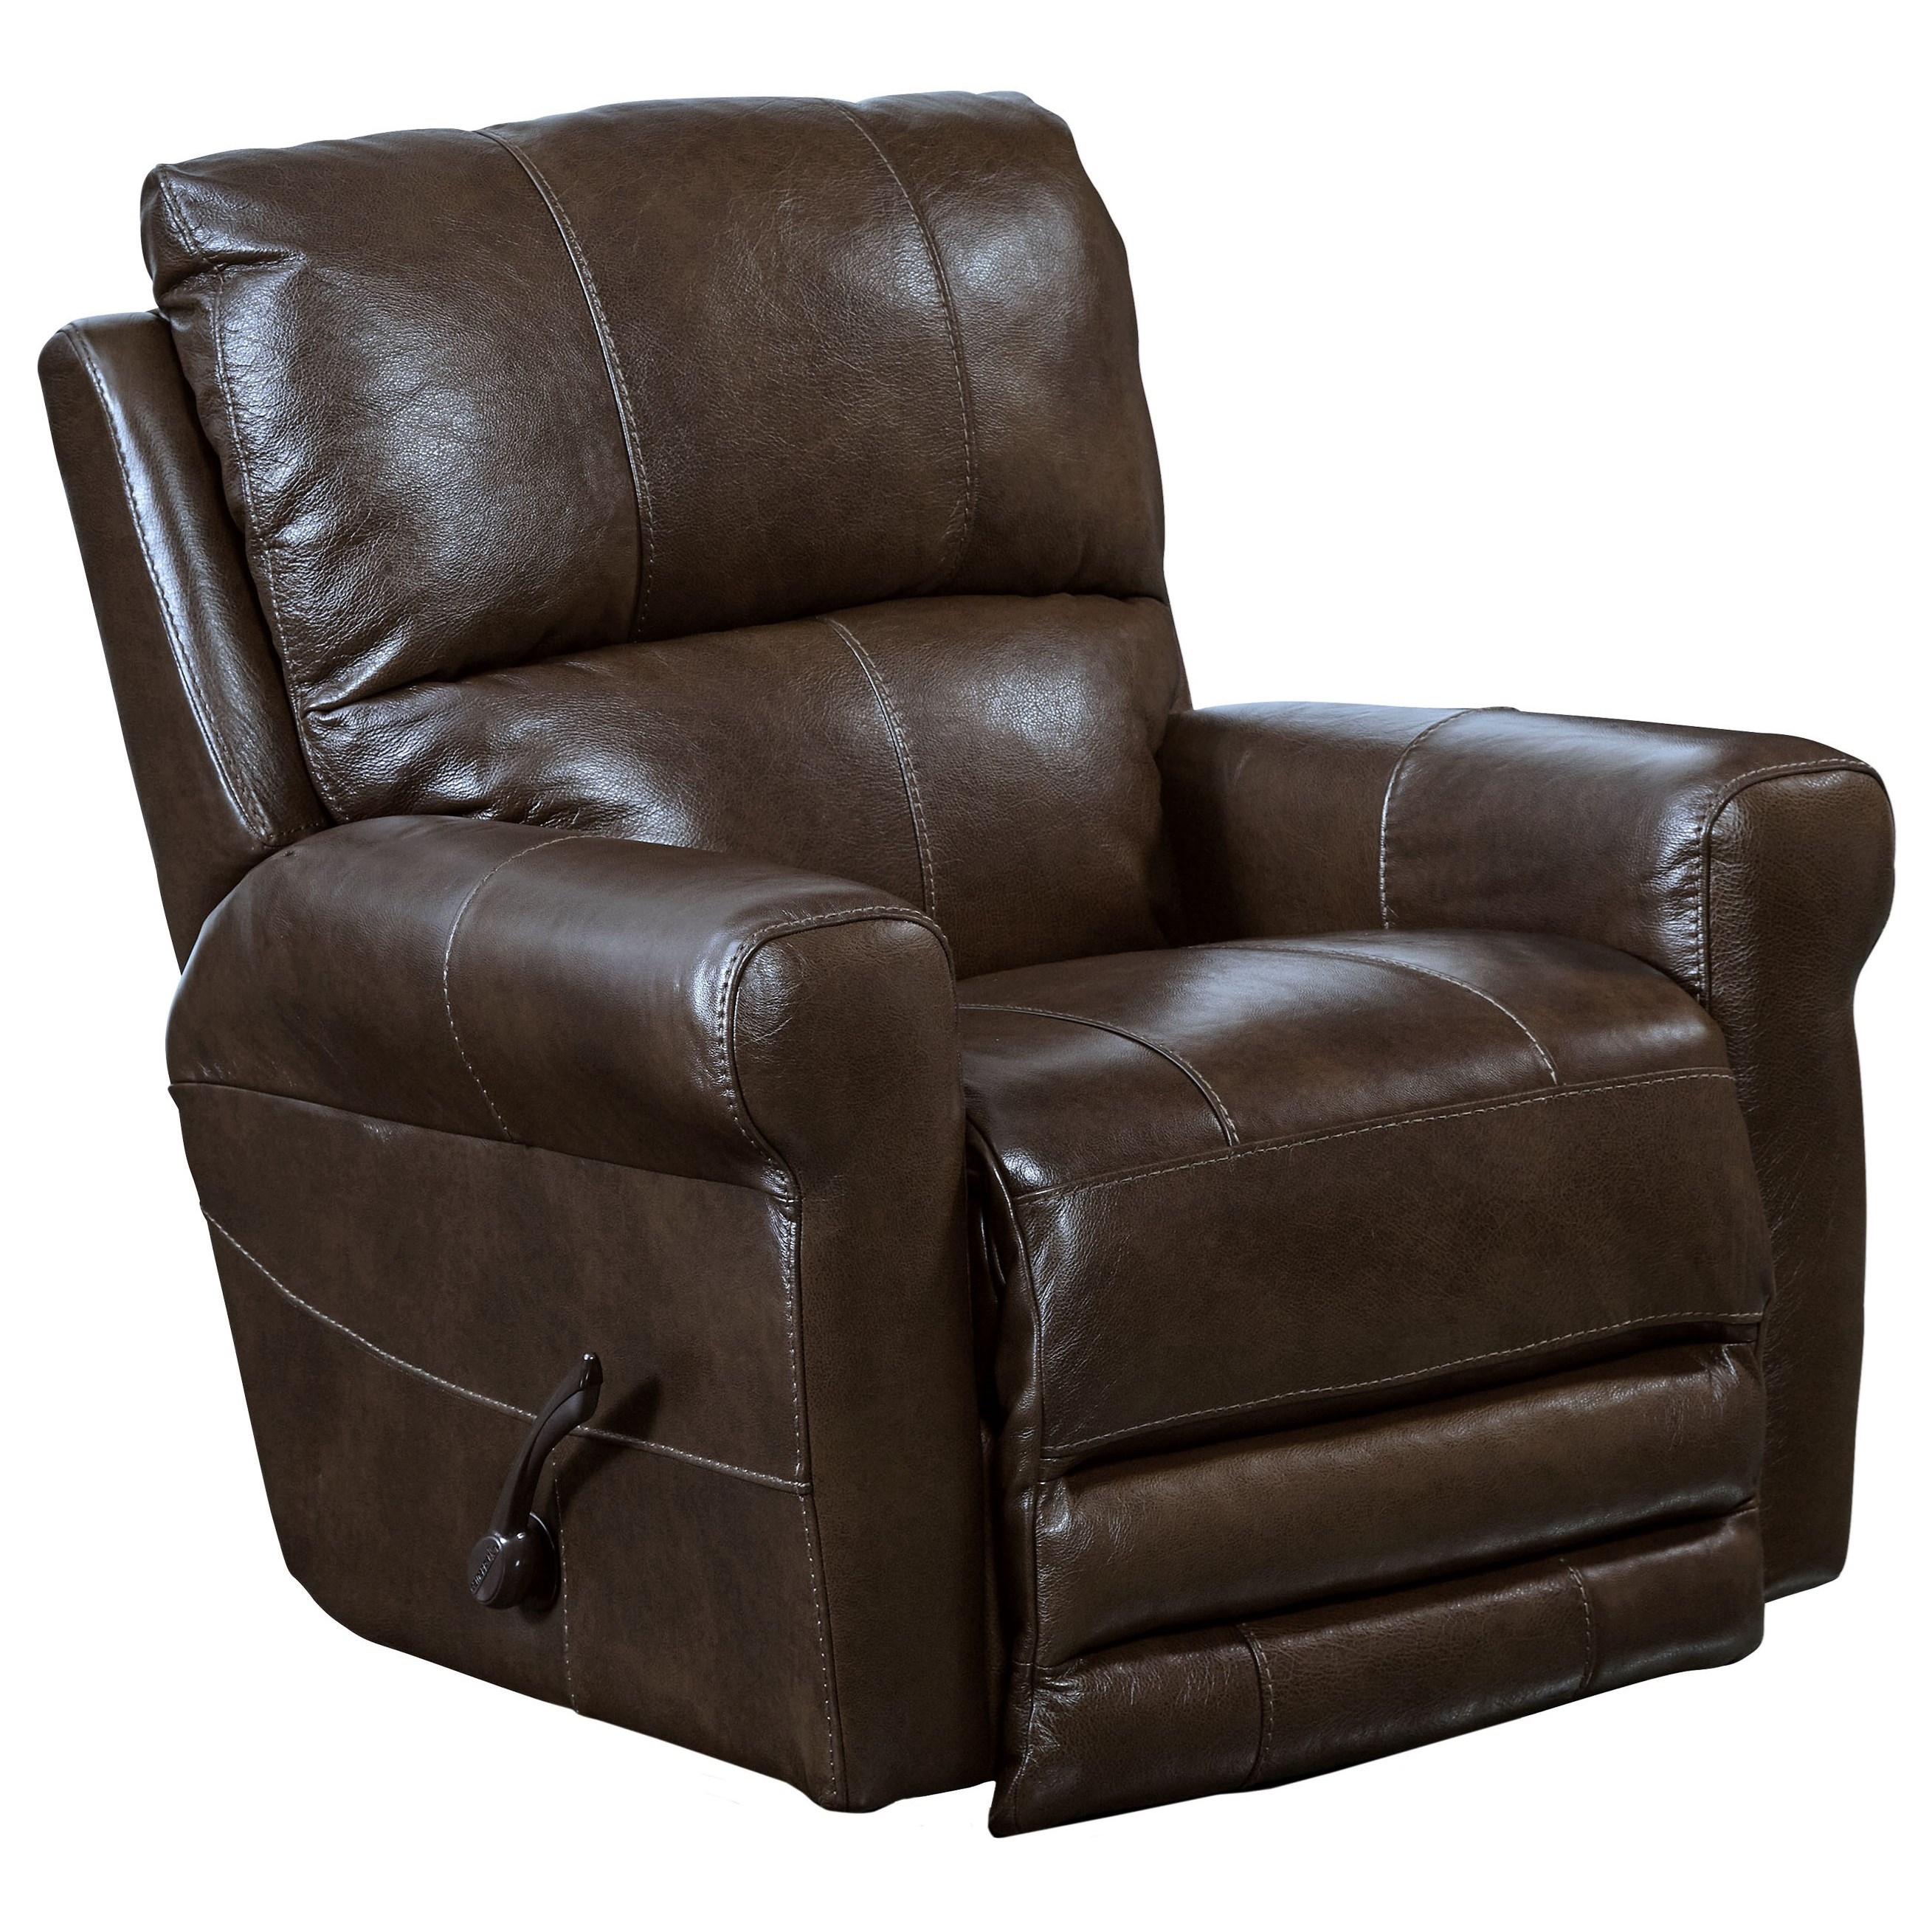 furniture recliners home on sale ashley at photo